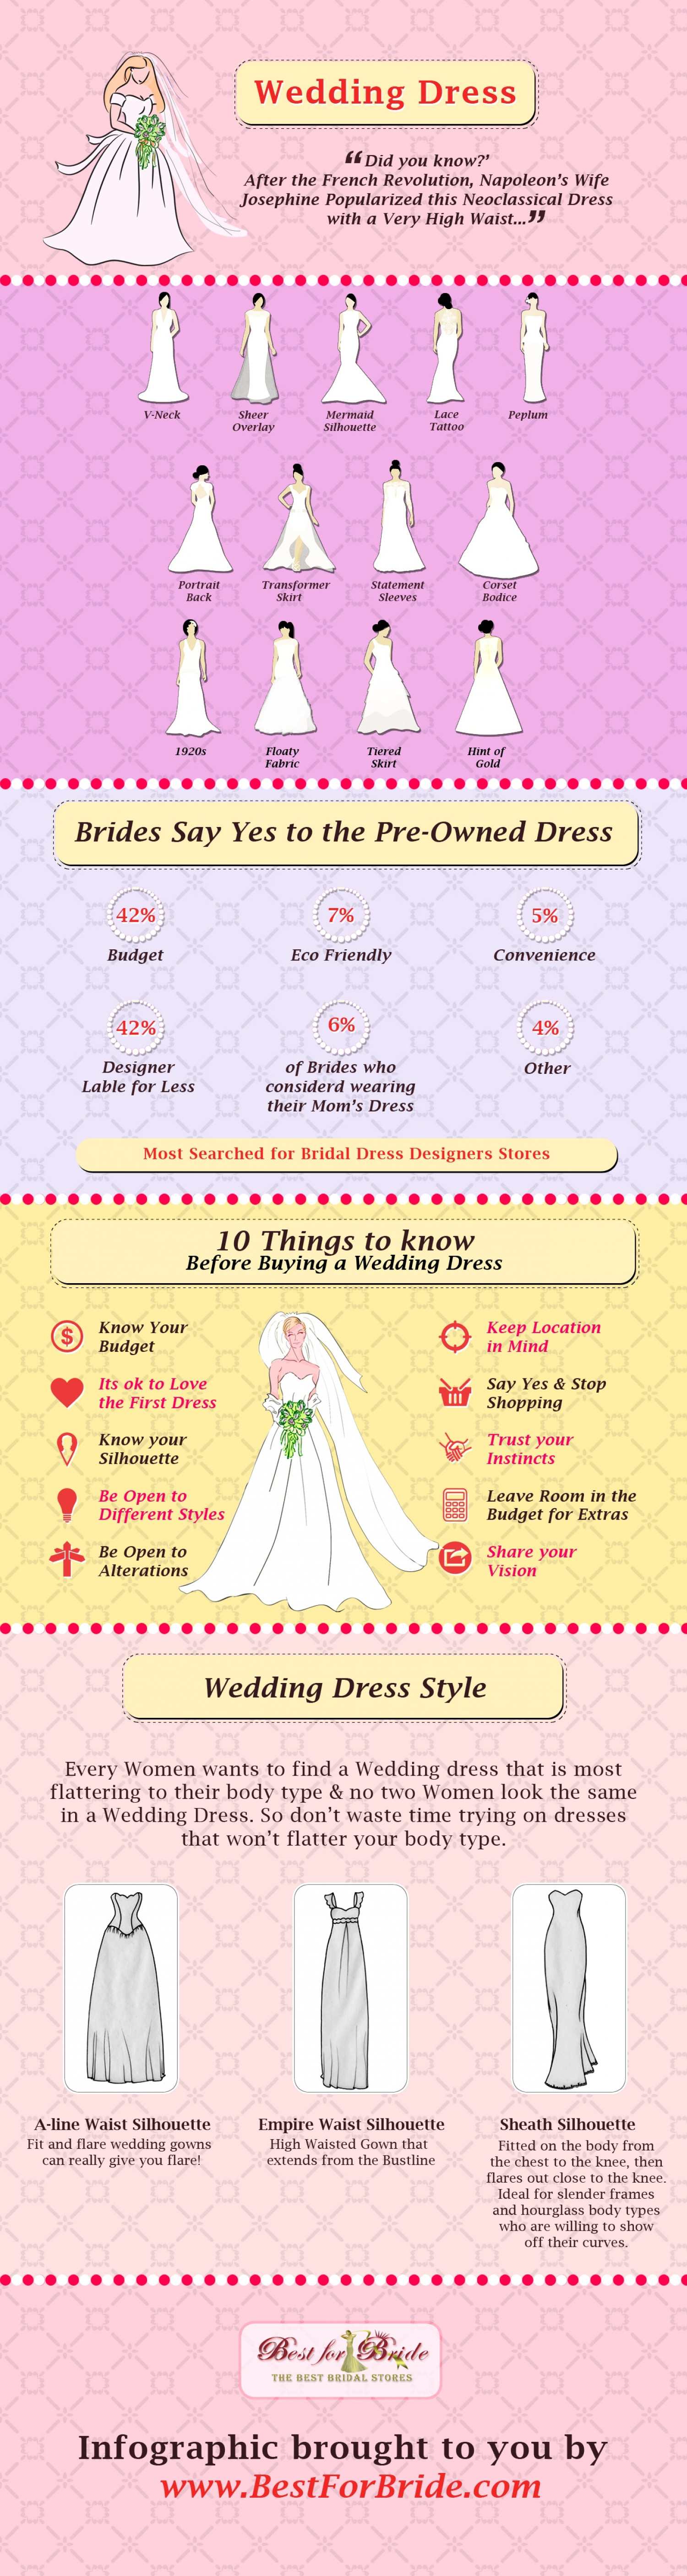 Best for Bride Infographic